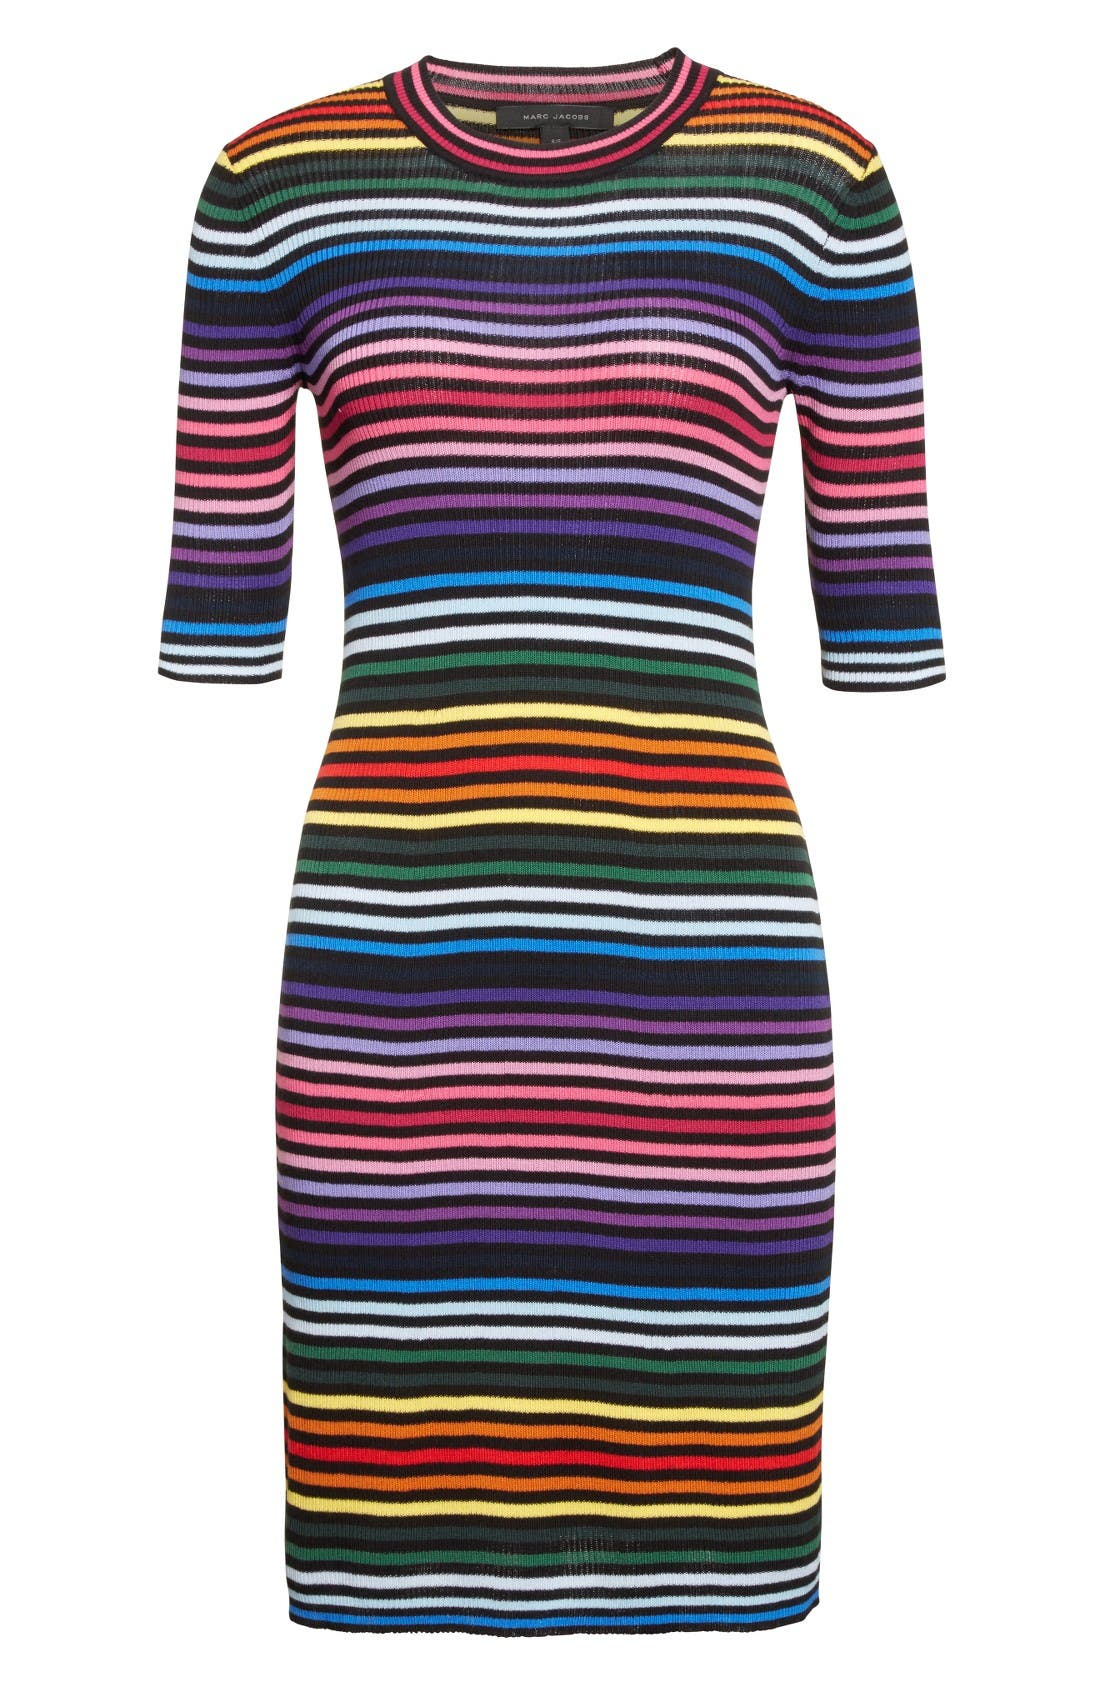 Alternate Image 4  - MARC JACOBS Stripe Cotton T-shirt Dress